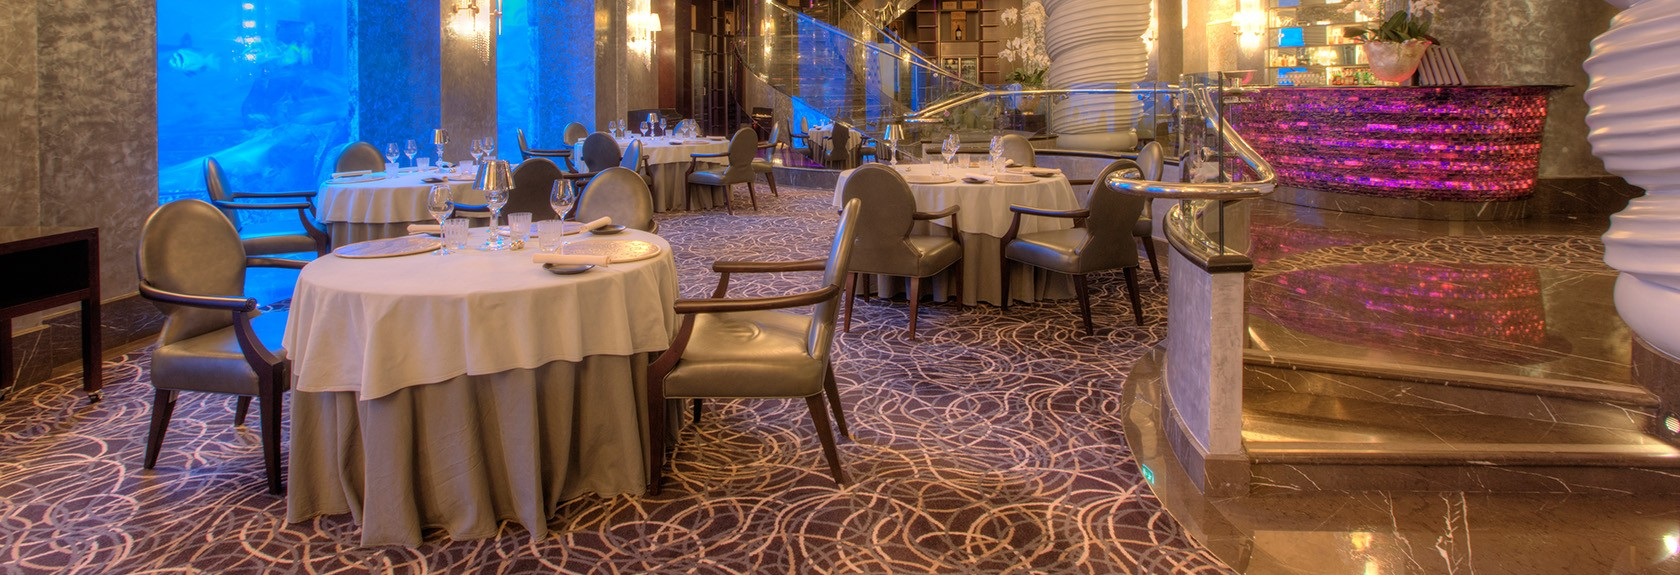 Lunchen en dineren in Atlantis the Palm